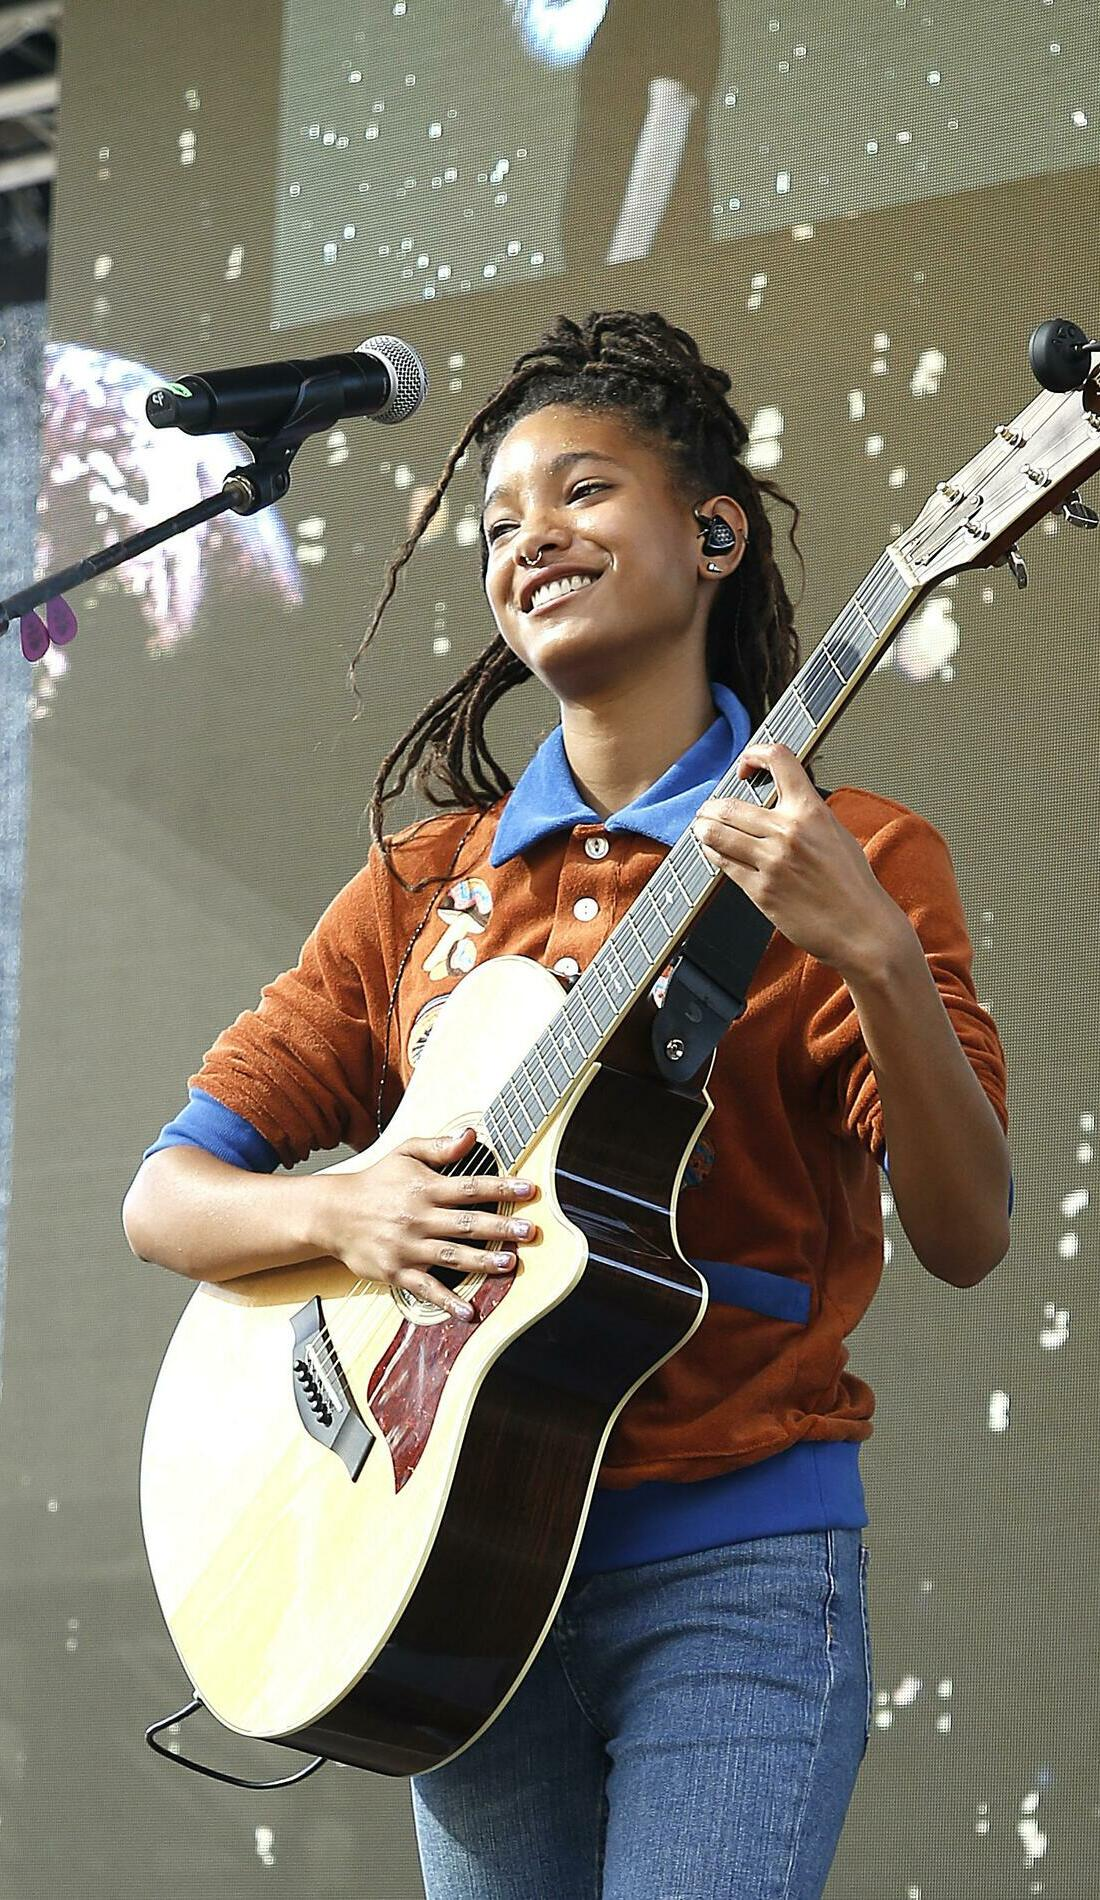 A Willow Smith live event